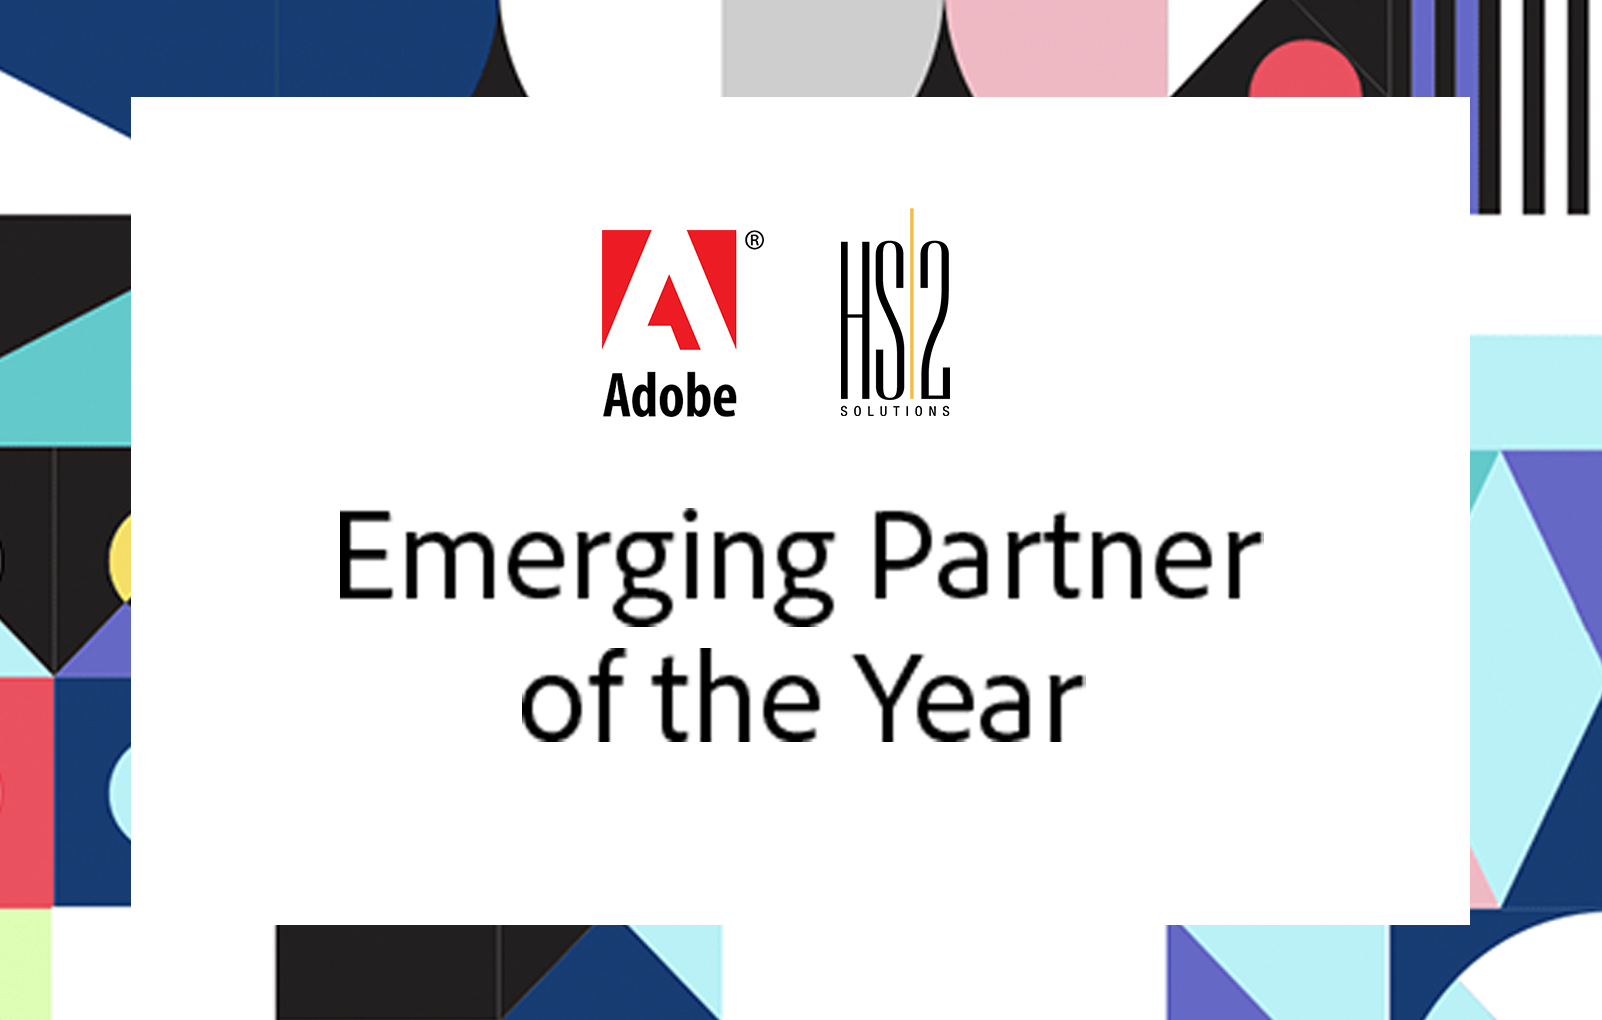 2018 Adobe Emerging Partner of the Year